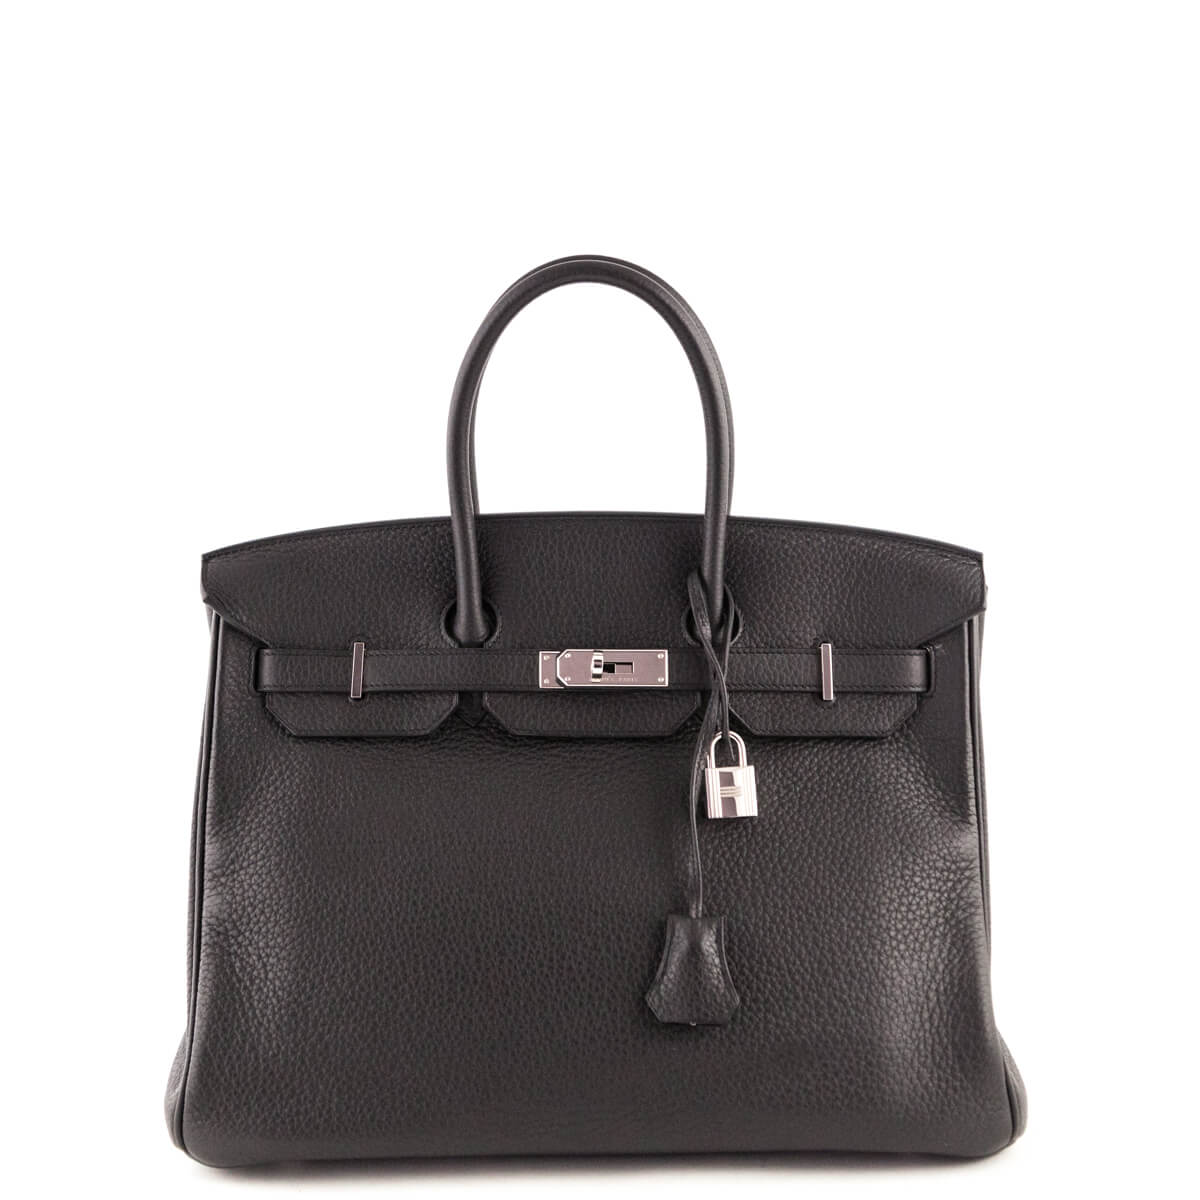 Hermes Anthracite Clemence Birkin 35 - LOVE that BAG - Preowned Authentic  Designer Handbags ... 54d41626f5699